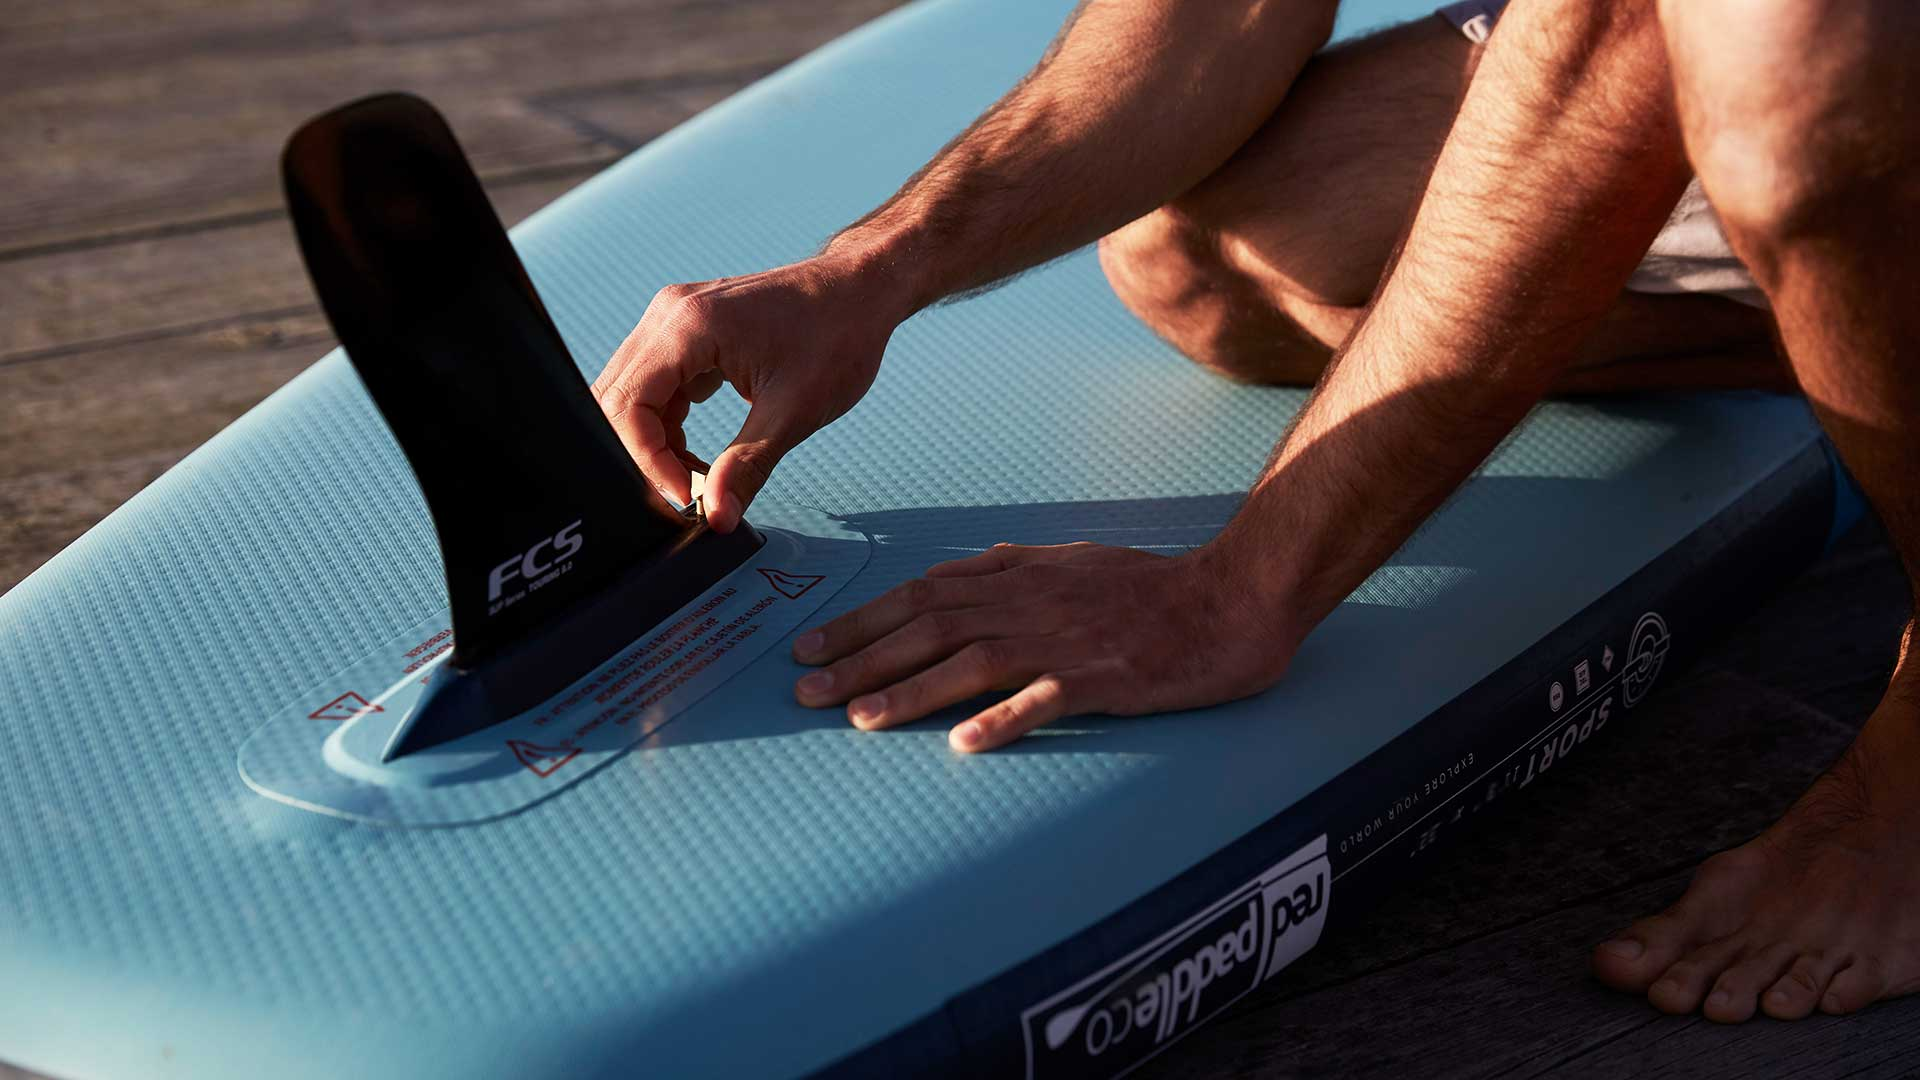 redpaddleco-126-sport-inflatable-paddle-board-desktop-gallery-fins